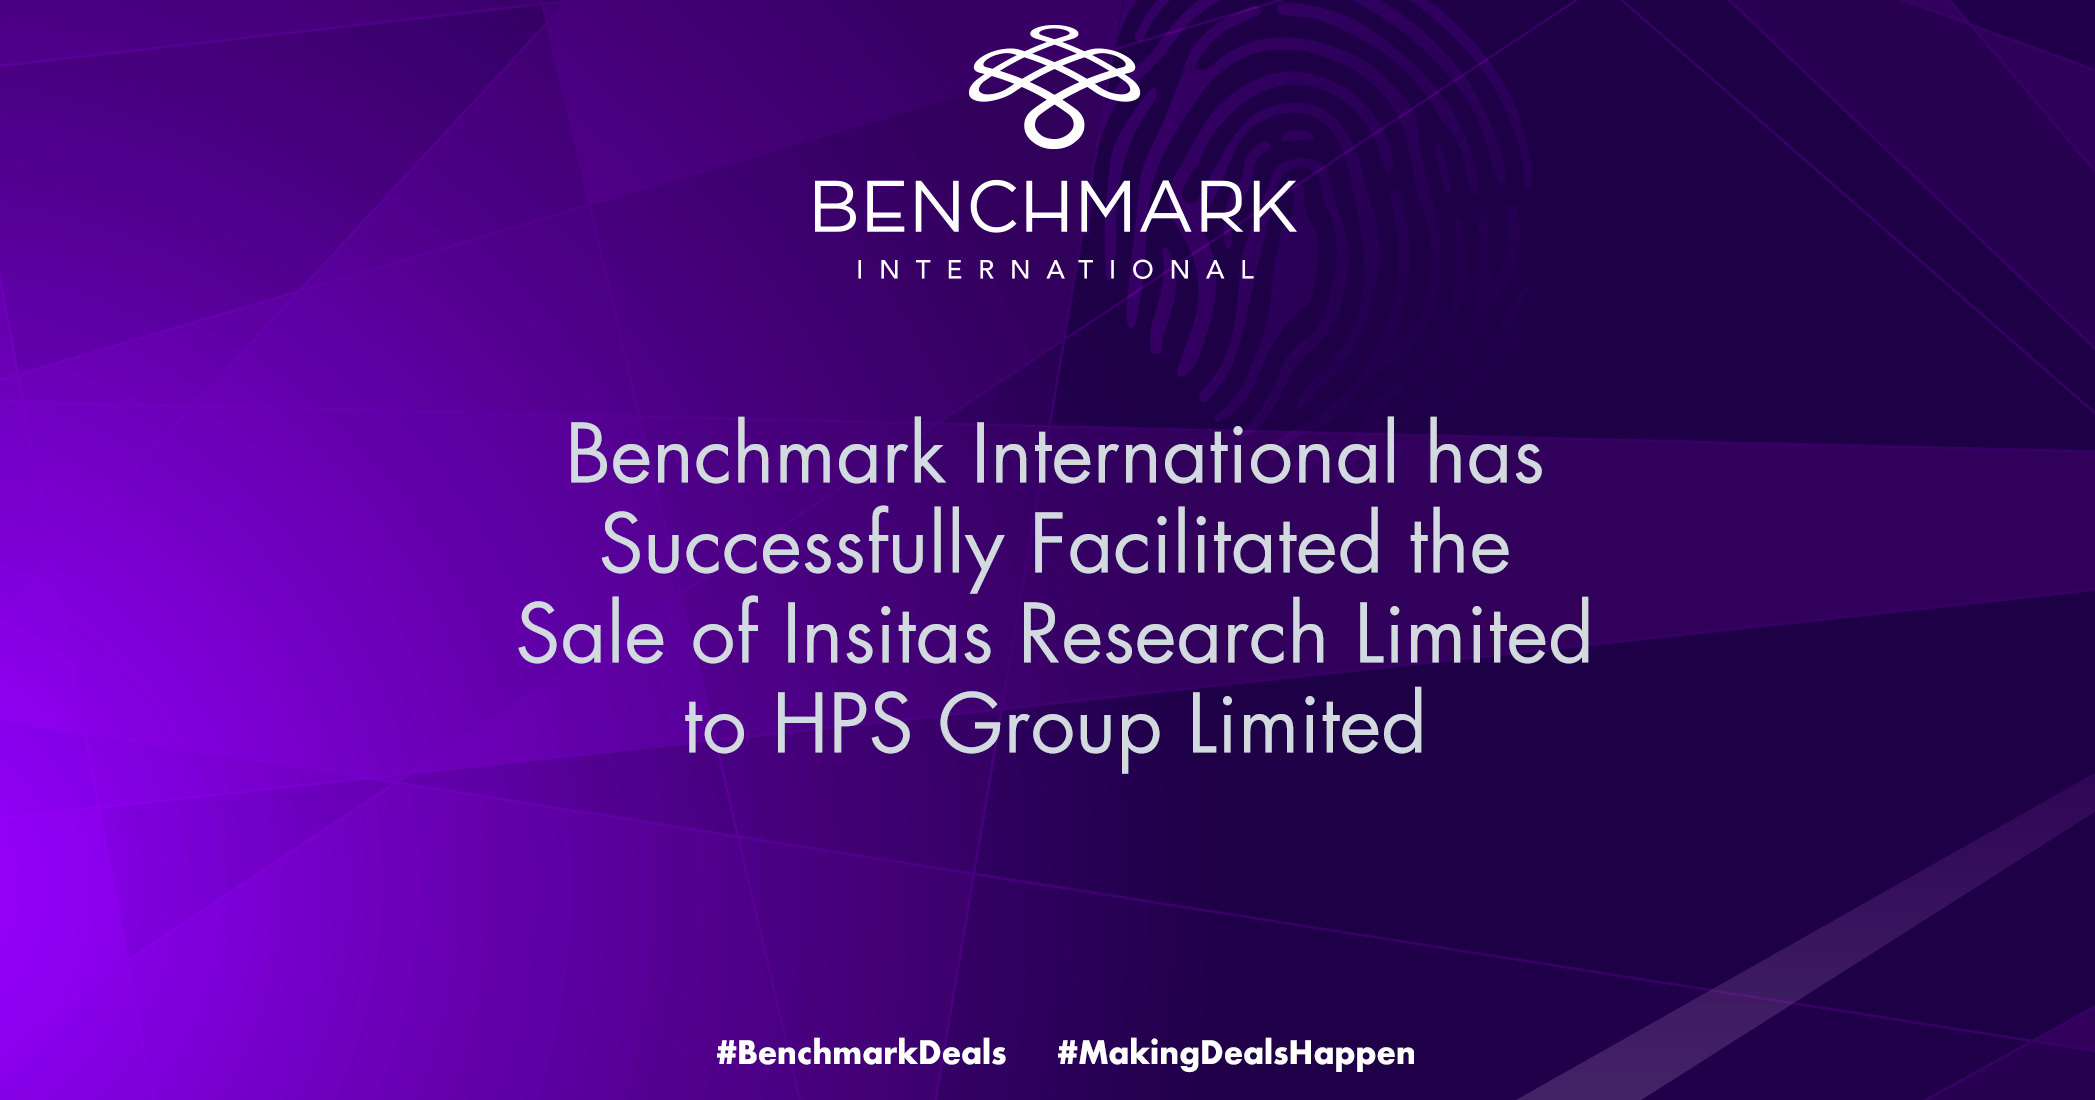 Benchmark International has Successfully Facilitated the Sale of Insitas Research Limited to HPS Group Limited